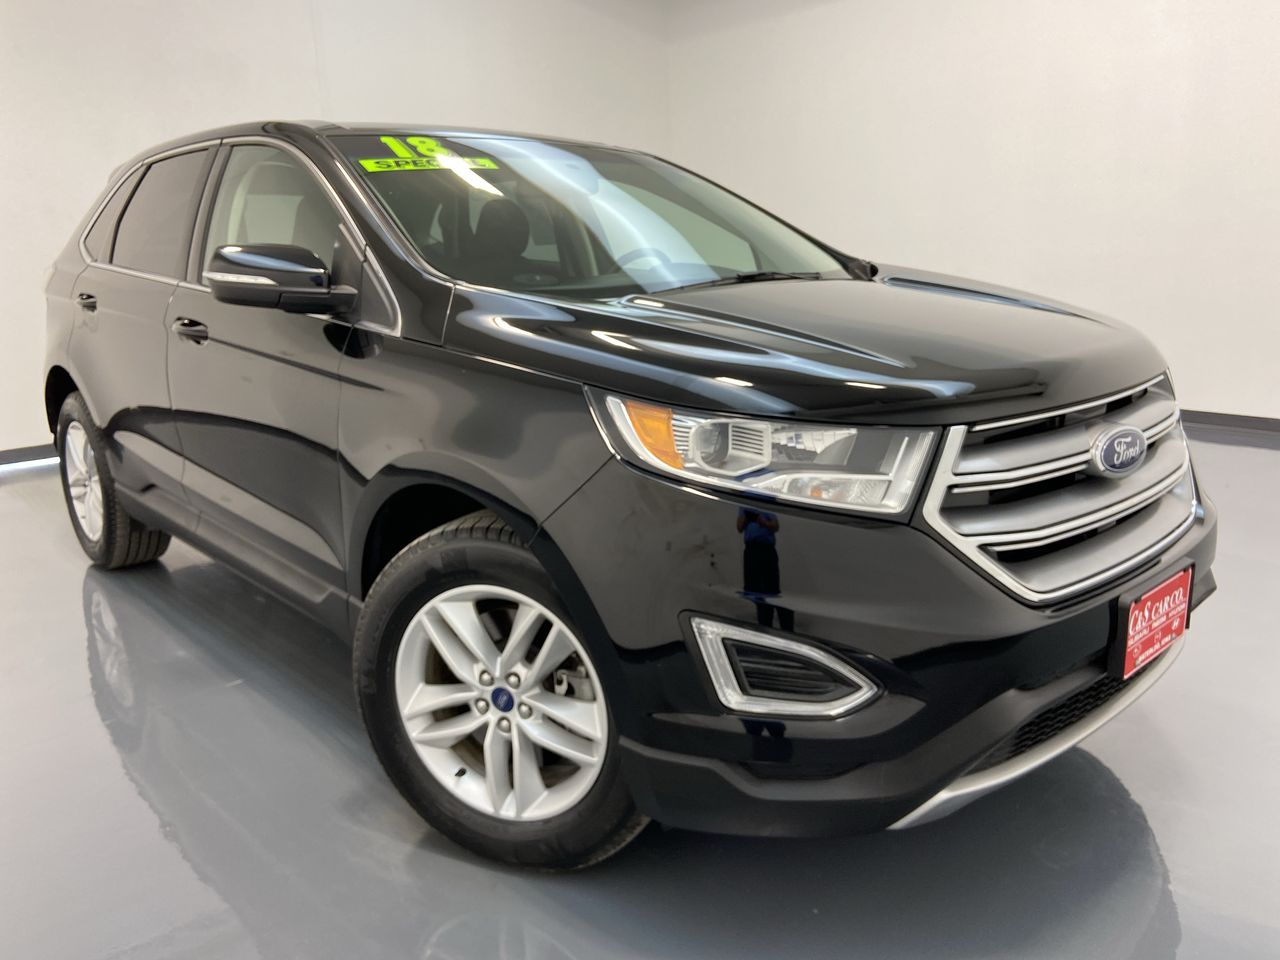 2018 Ford Edge 4D SUV AWD  - SC8137A  - C & S Car Company